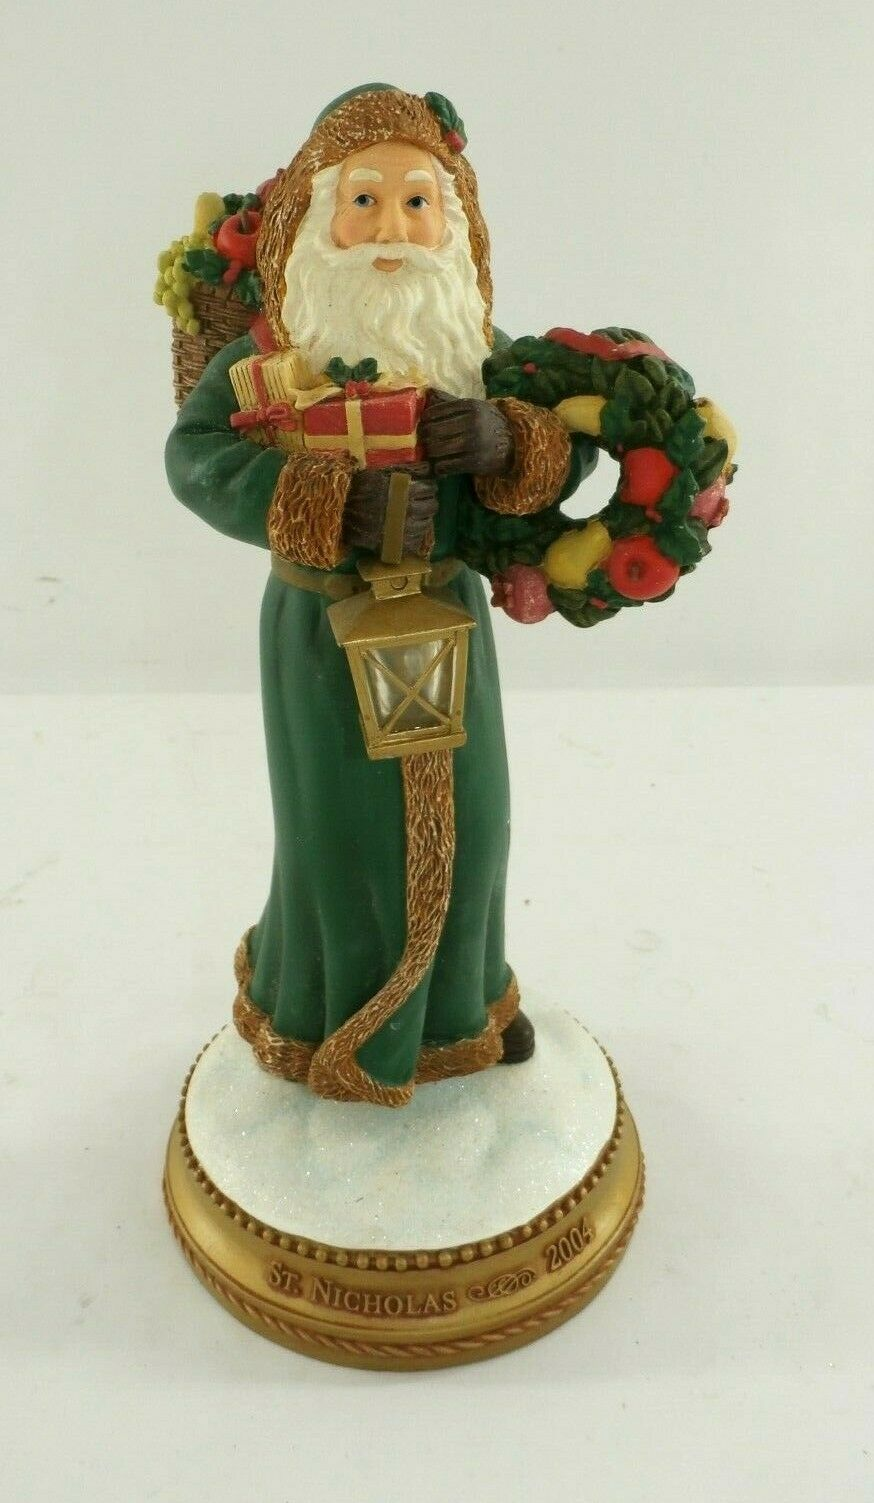 Primary image for Hallmark St. Nicholas Christmas Ornamental Figurine w/ Light Up Lamp 2004